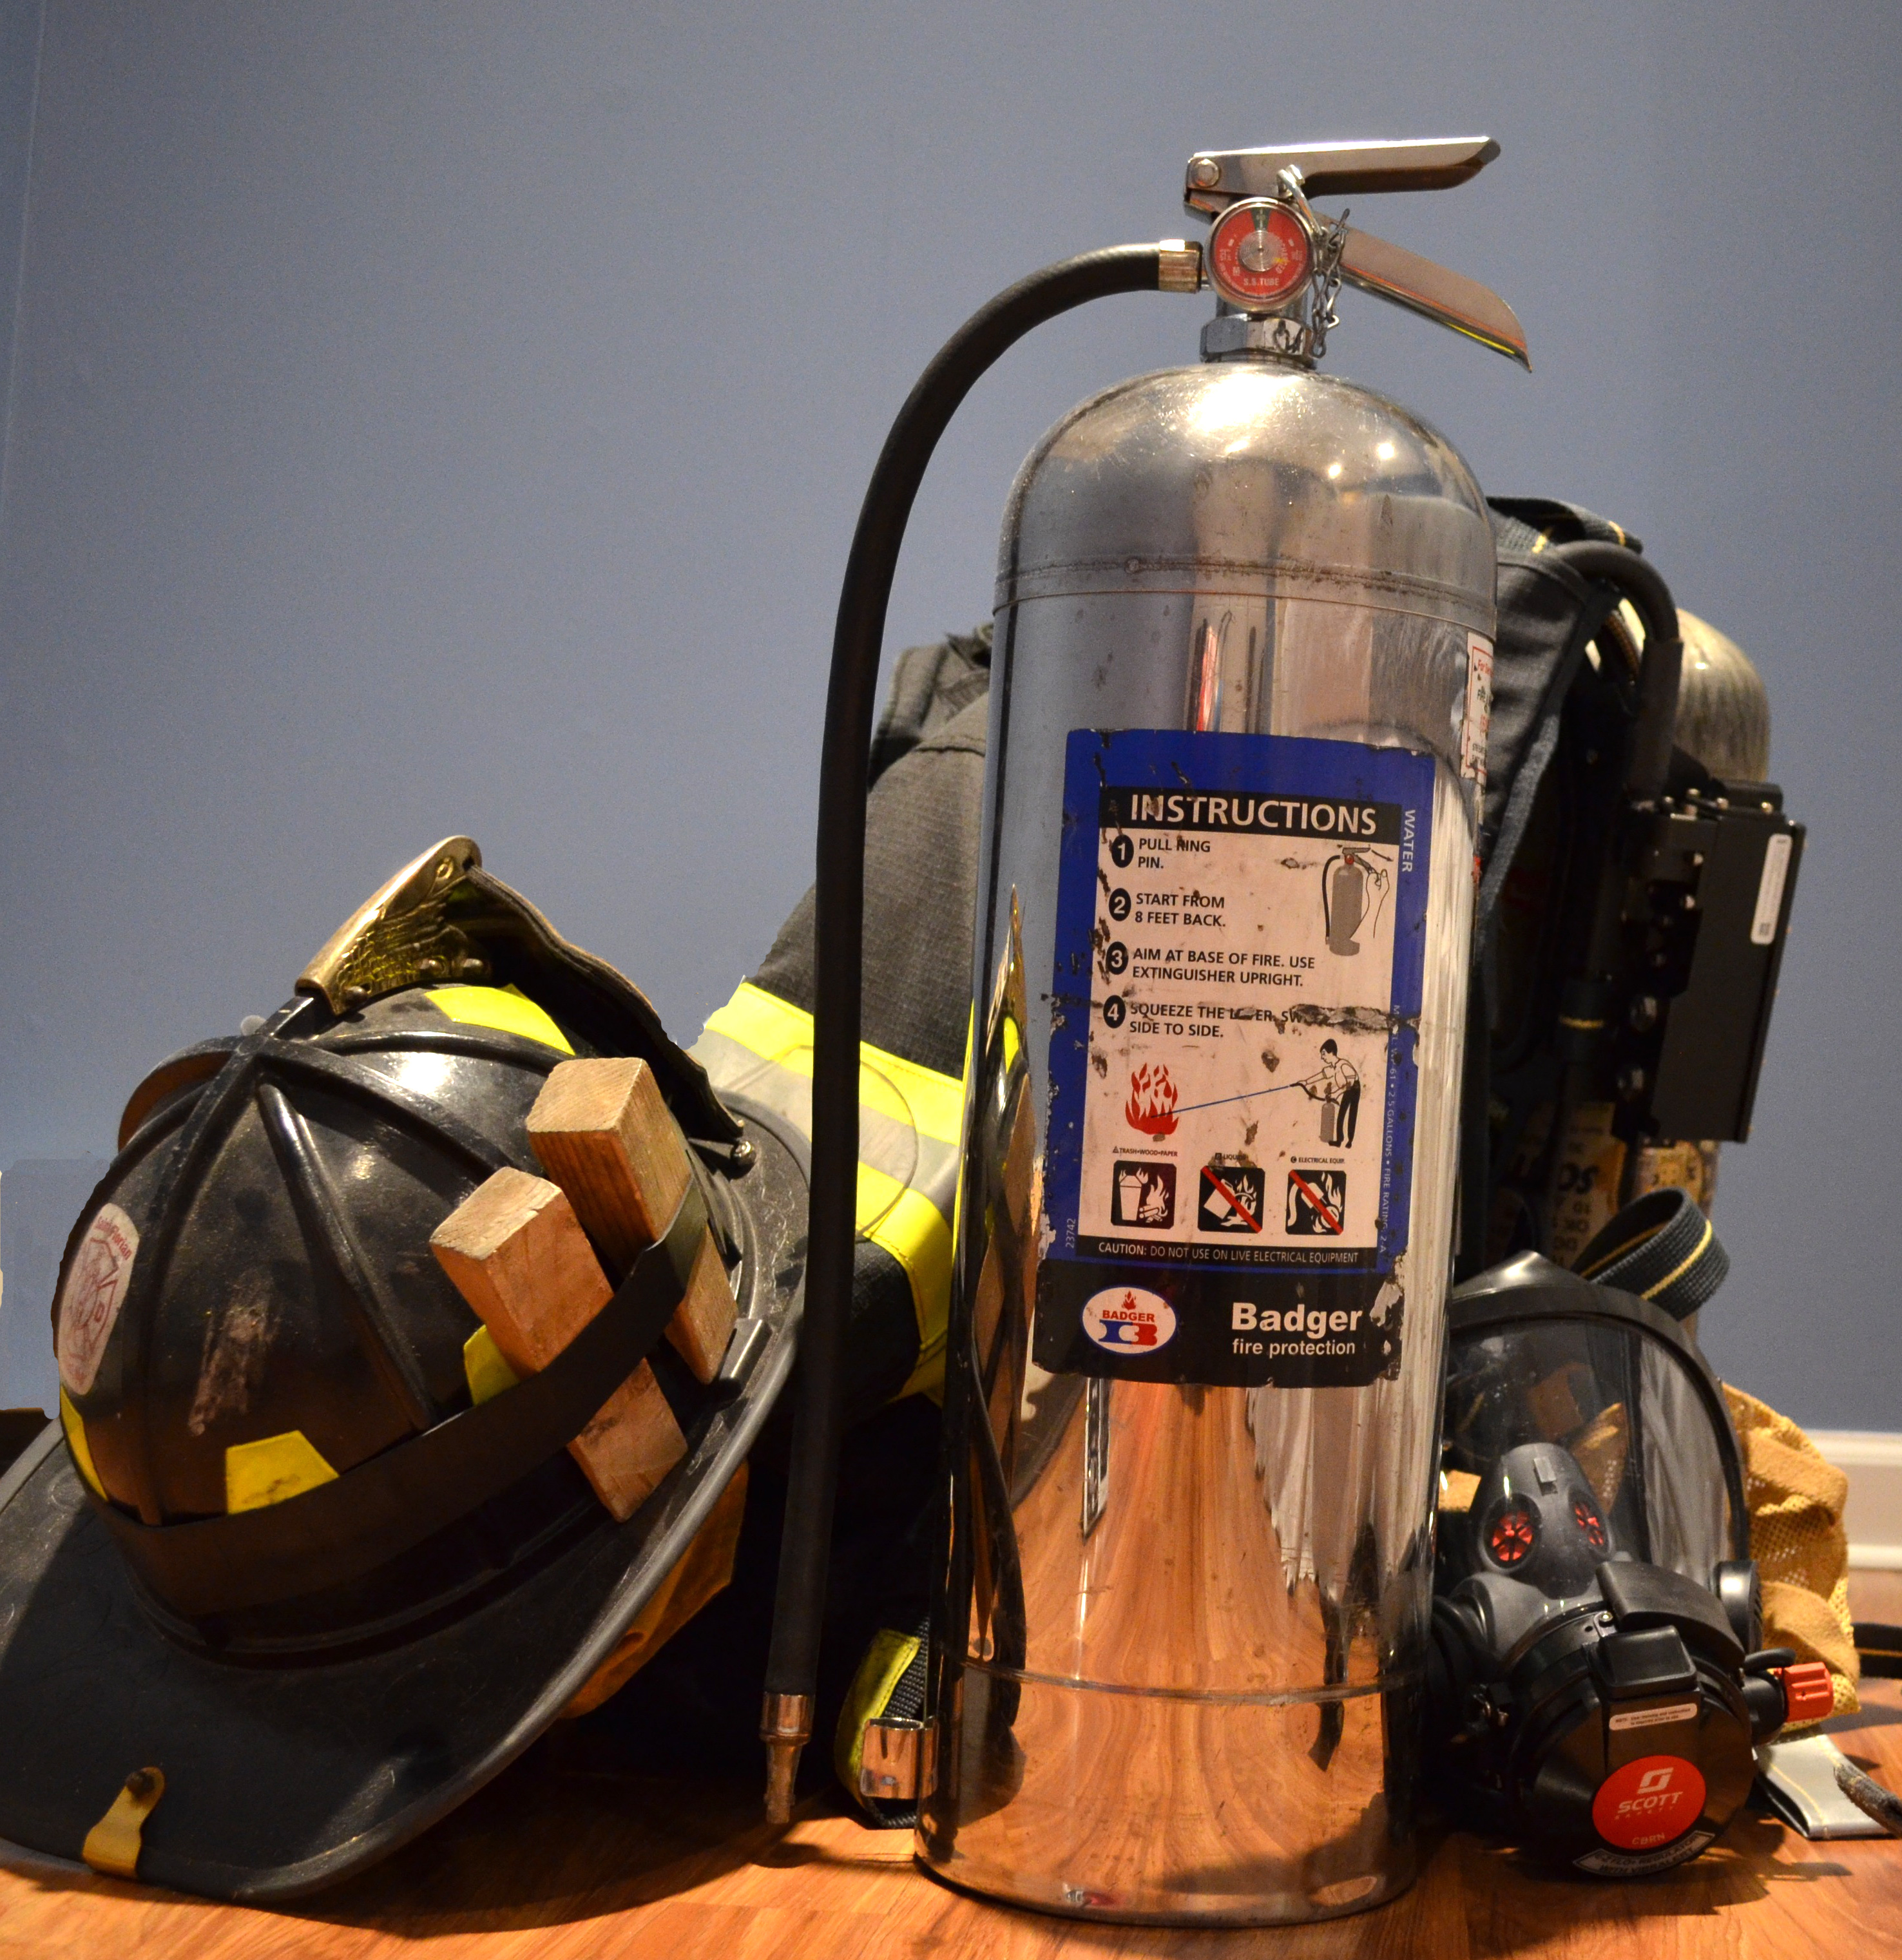 The 2-1/2 Gallon Water Extinguisher